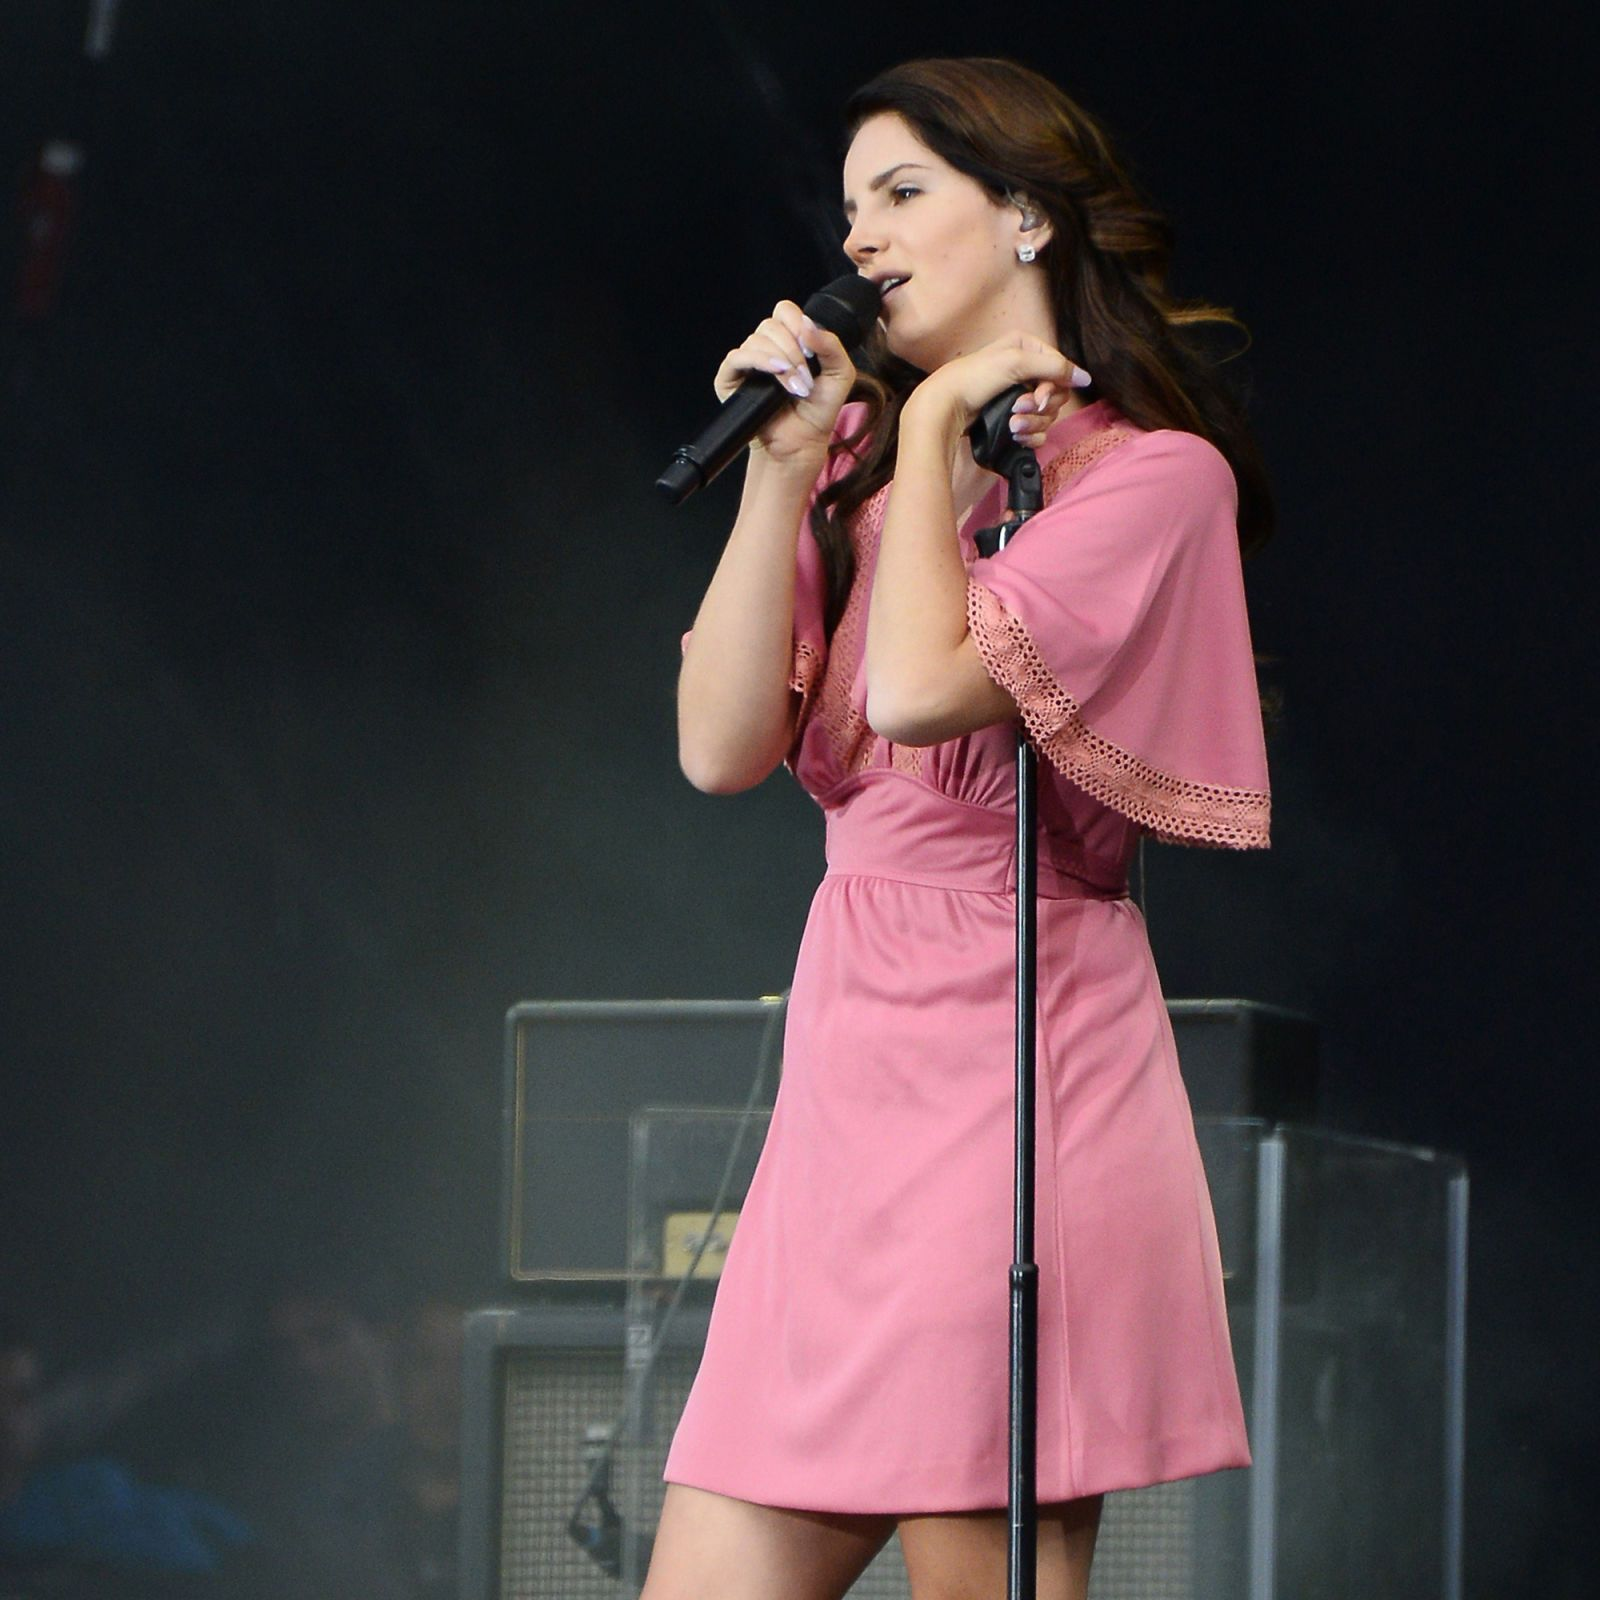 Performing on stage during the Rock-en-Seine music festival in Saint-Cloud, near Paris on August 24, 2014.